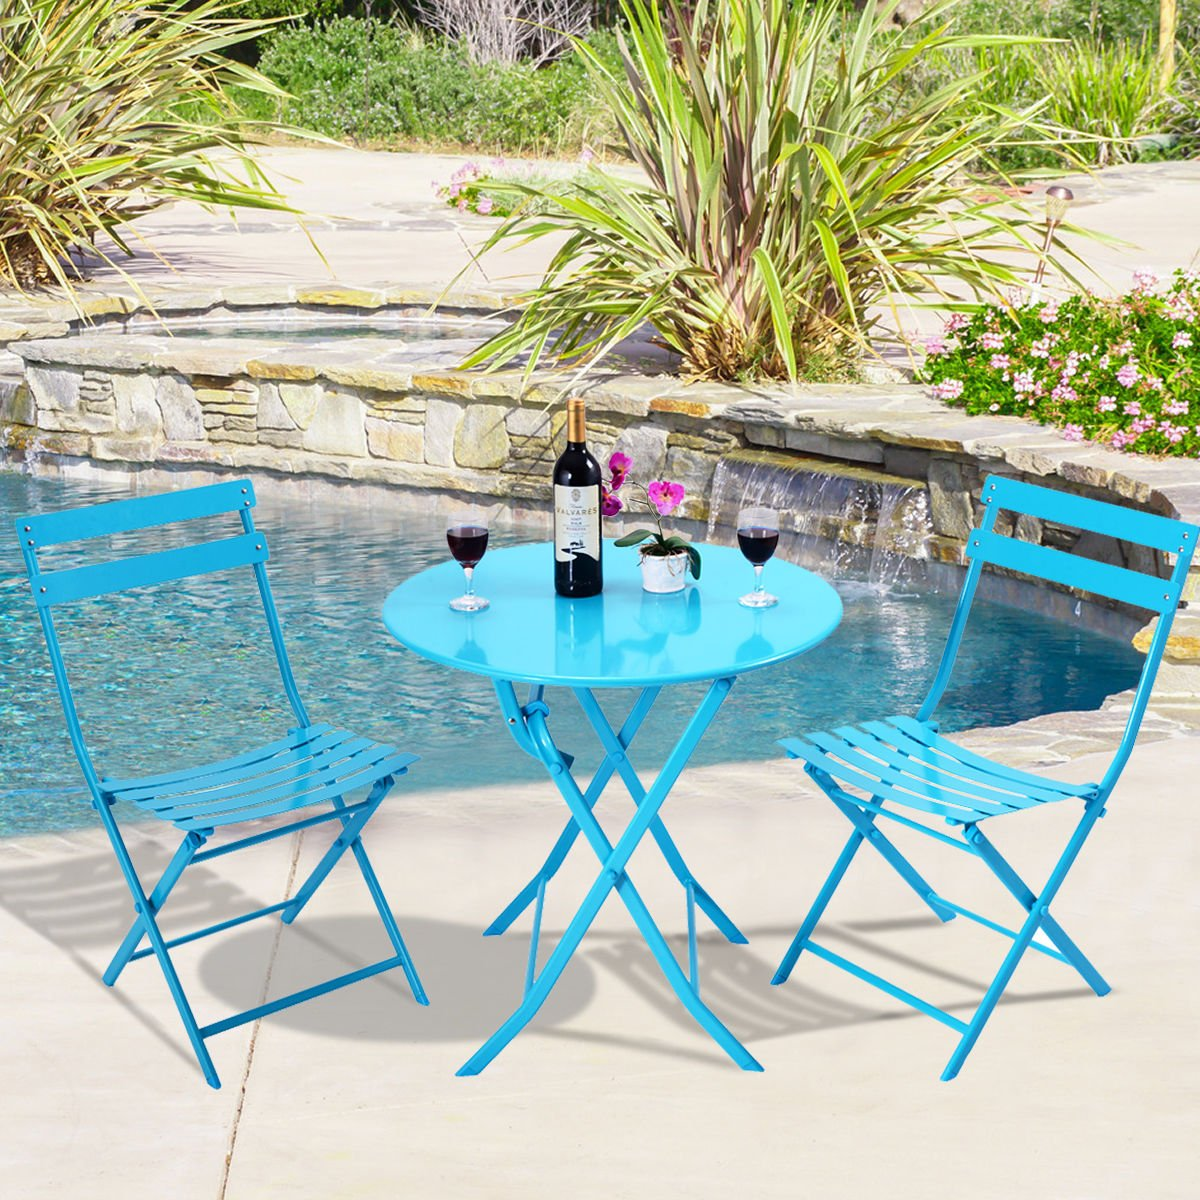 3 Pcs. Blue Table Chair Set Foldable Outdoor Patio Garden Pool Metal Furniture by Allblessings (Image #2)